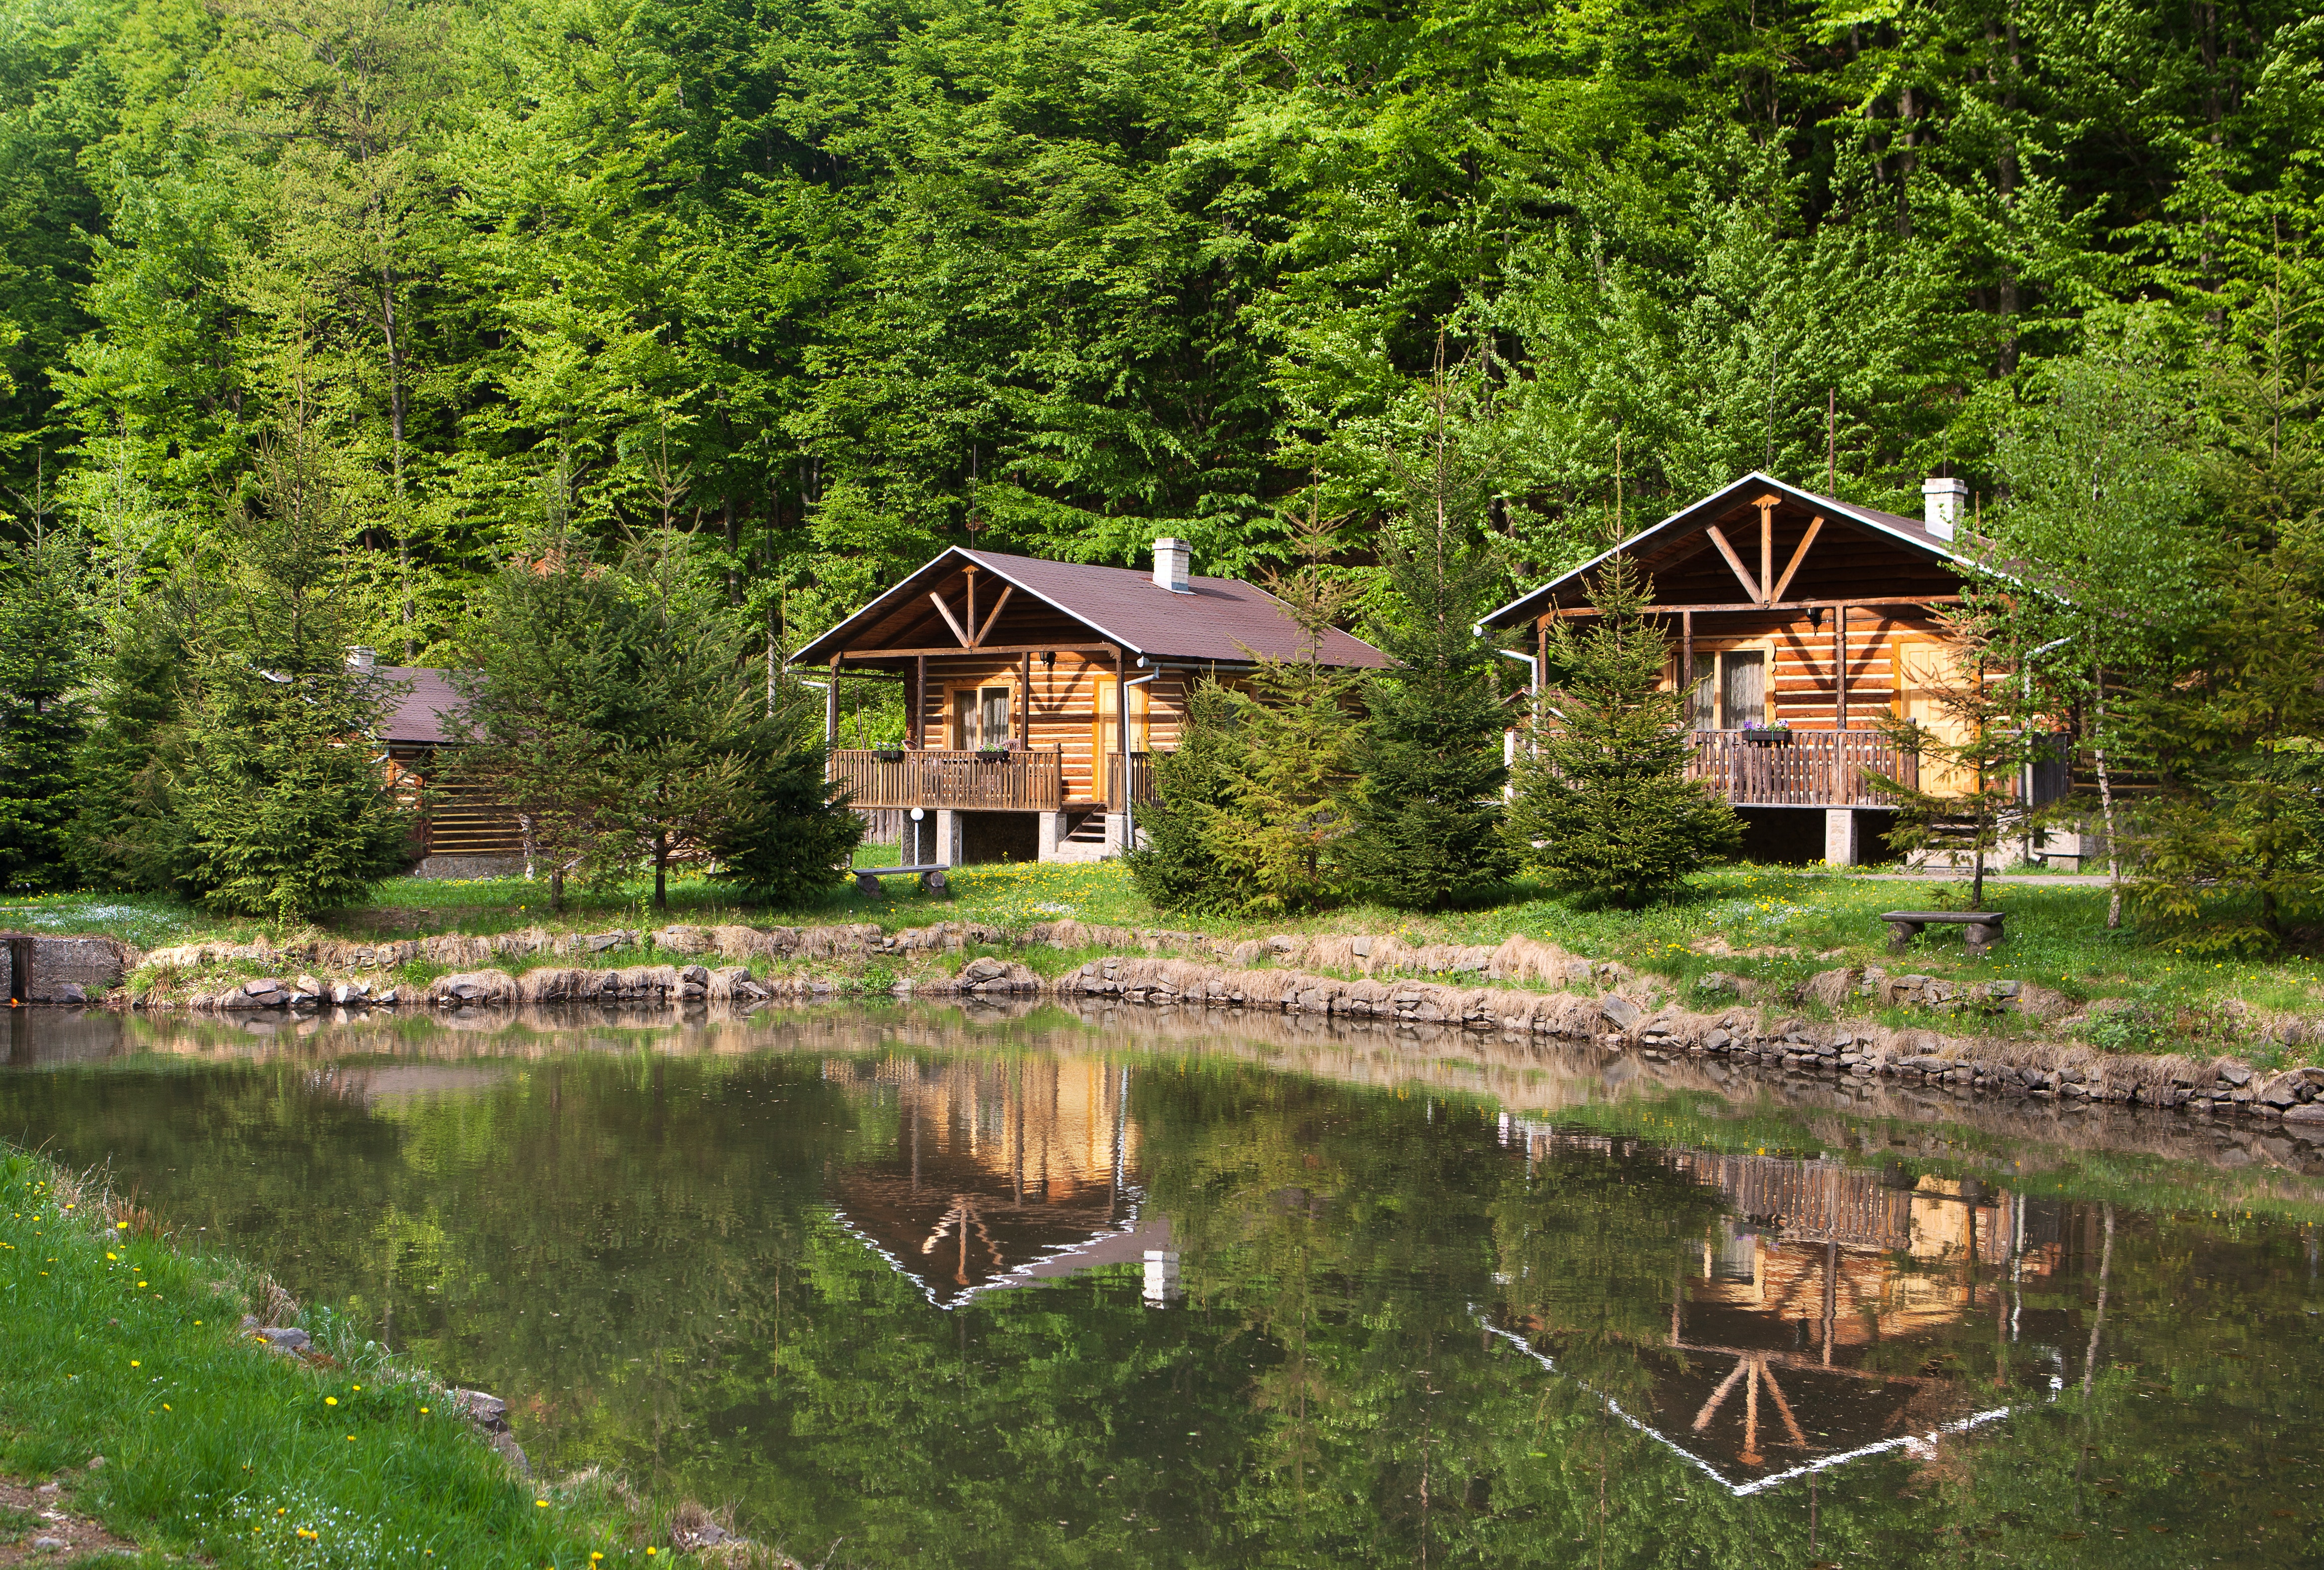 Two wooden chalets by the lake